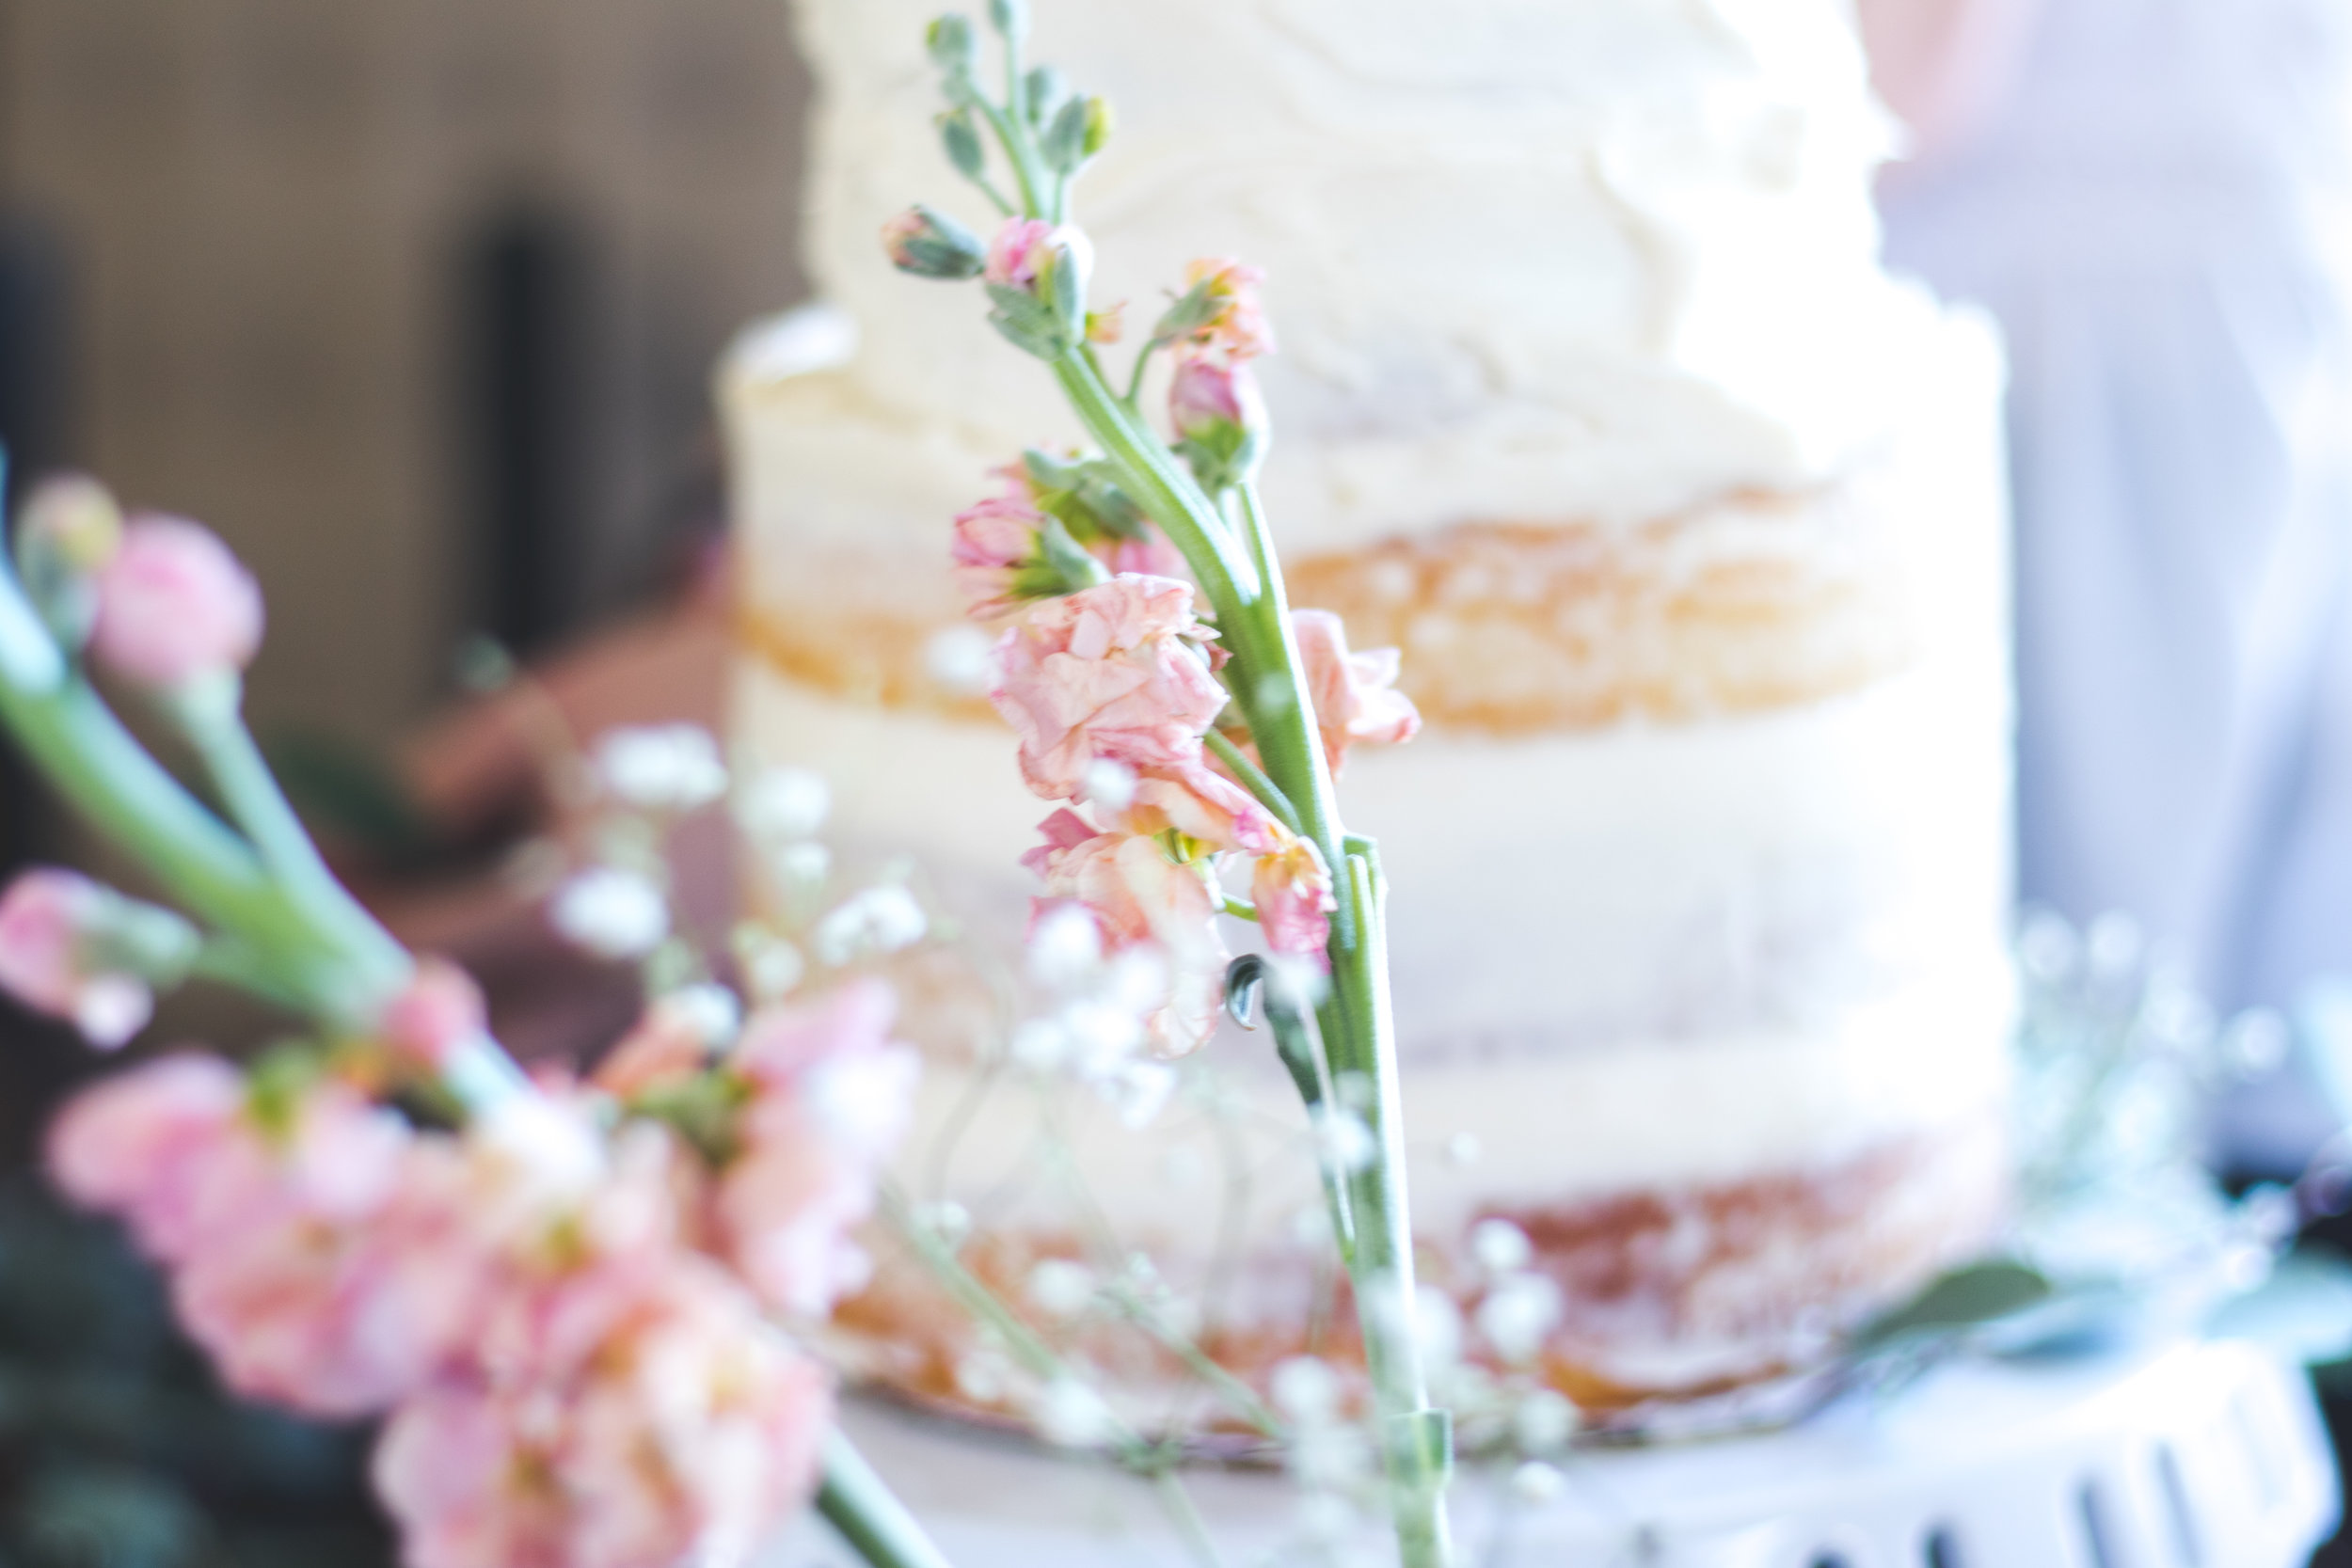 - Mary Michael's love for the small and simple details of a celebration are visibly seen in her work. Her cakes are simple and elegant with whimsical strokes of frosting laced with wild botanicals.